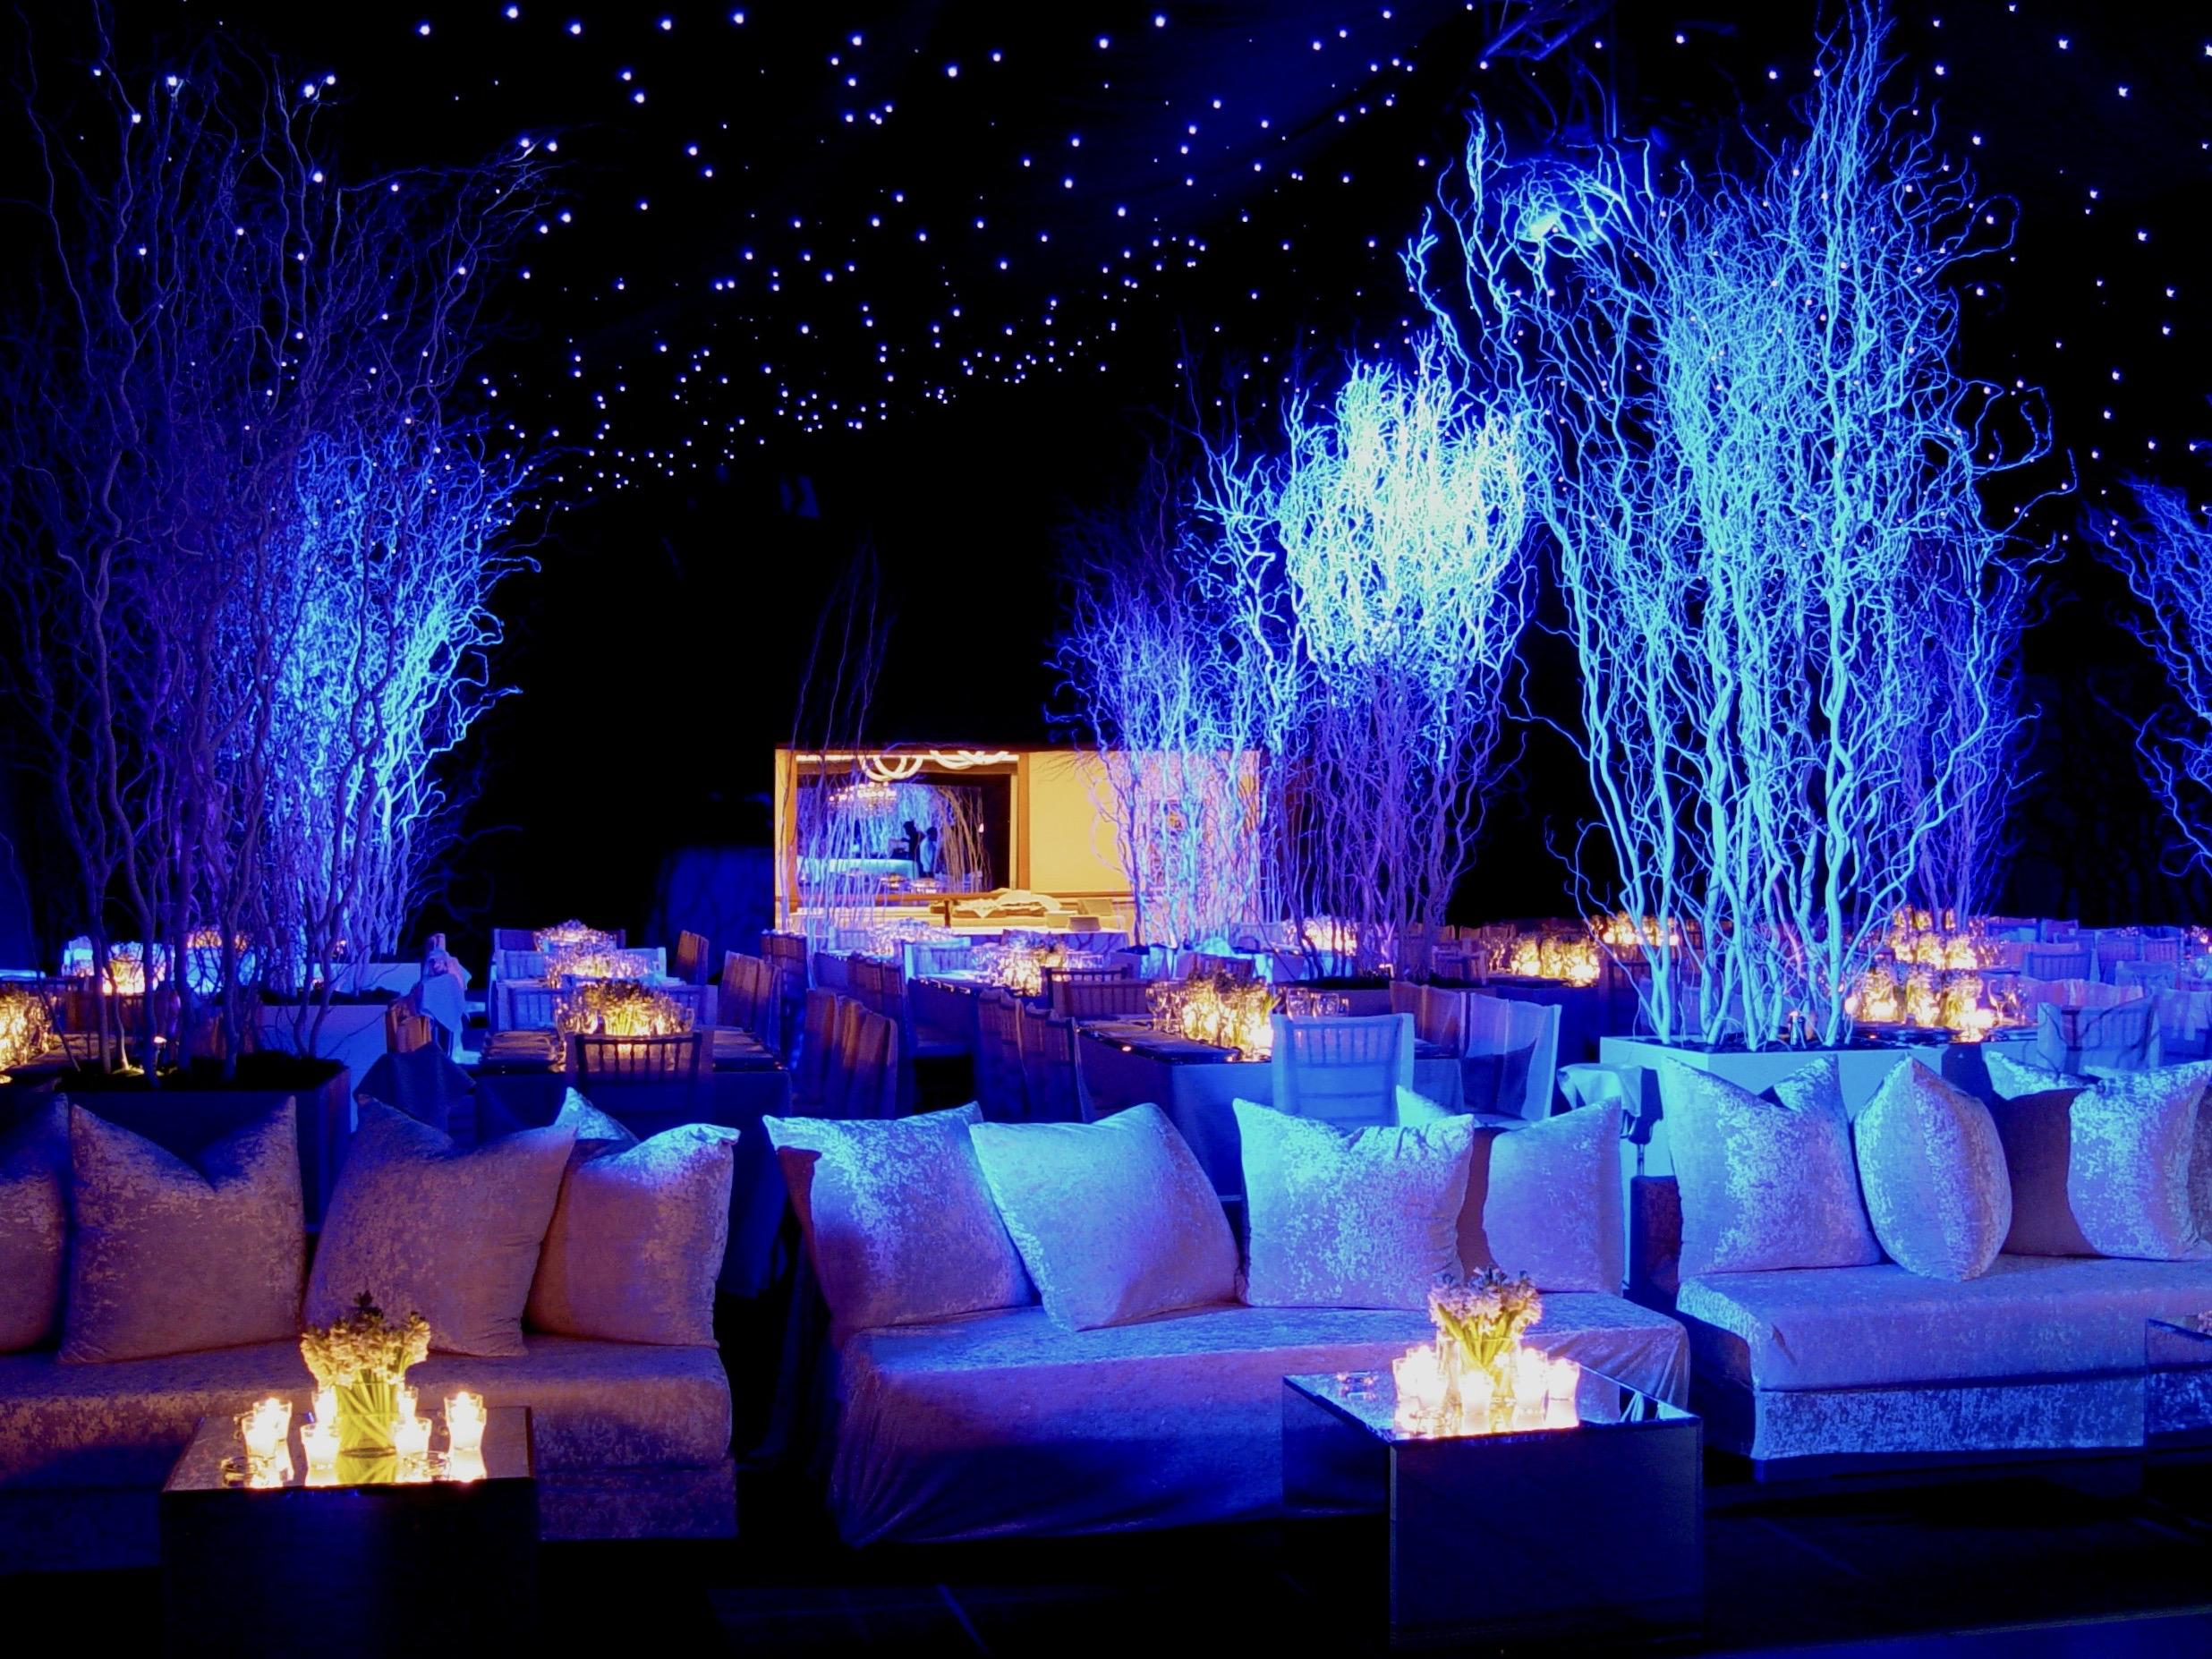 White Christmas party - Image 13